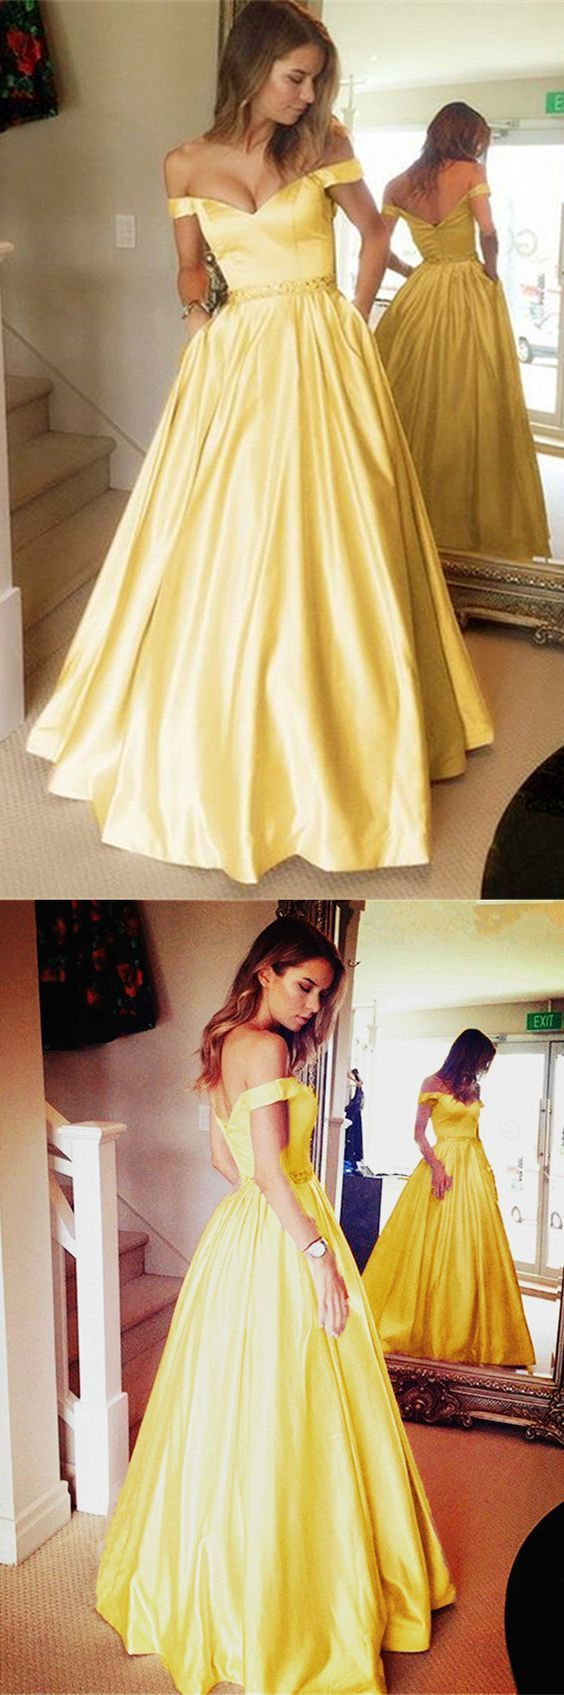 Gold satin v neck long prom dresses ball gowns off the shoulder prom